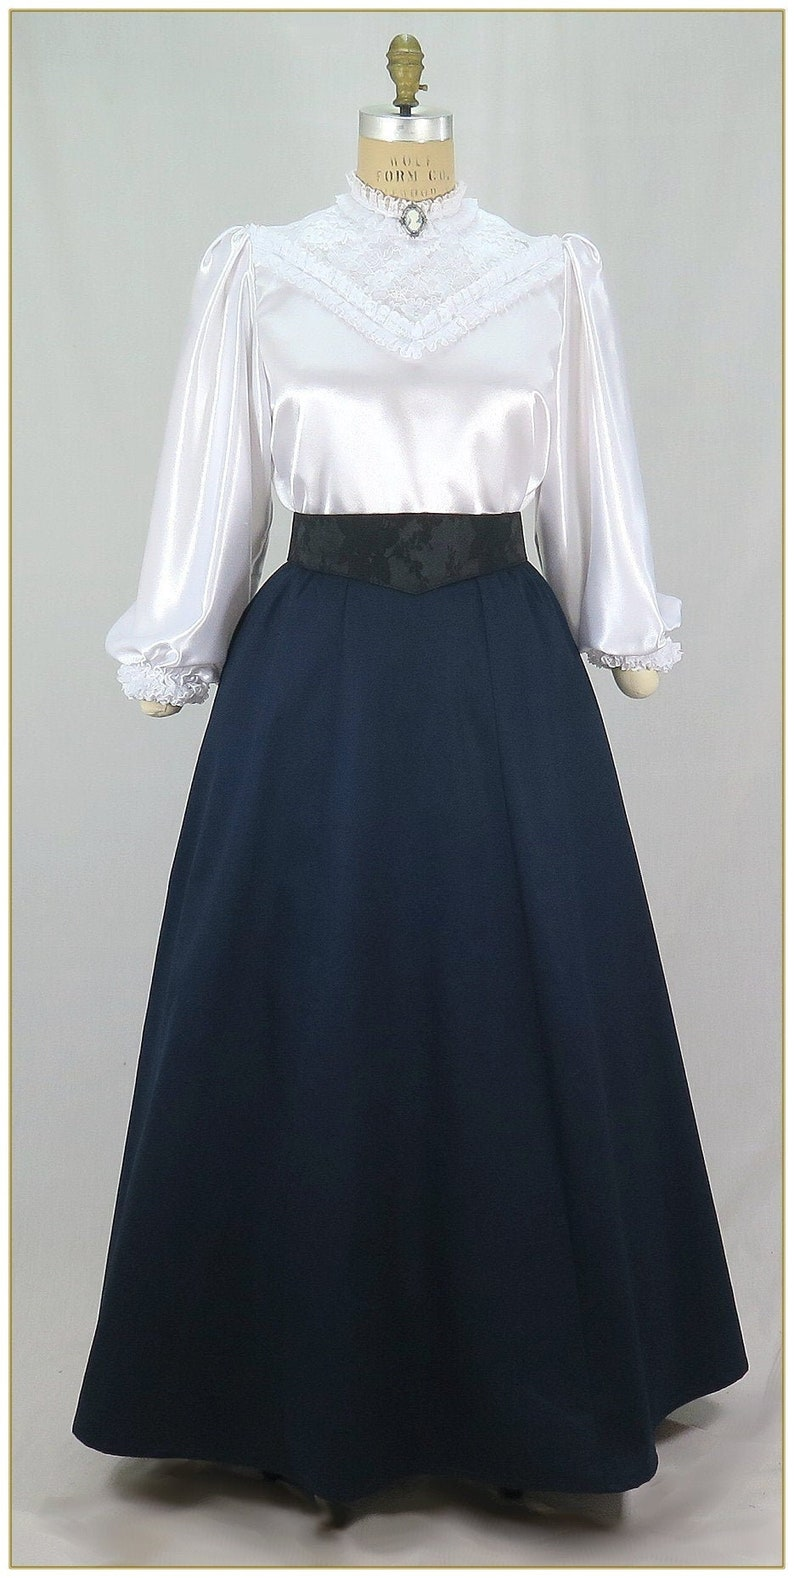 Victorian Clothing, Costumes & 1800s Fashion Victorian Navy Twill Skirt Premiere  $65.00 AT vintagedancer.com